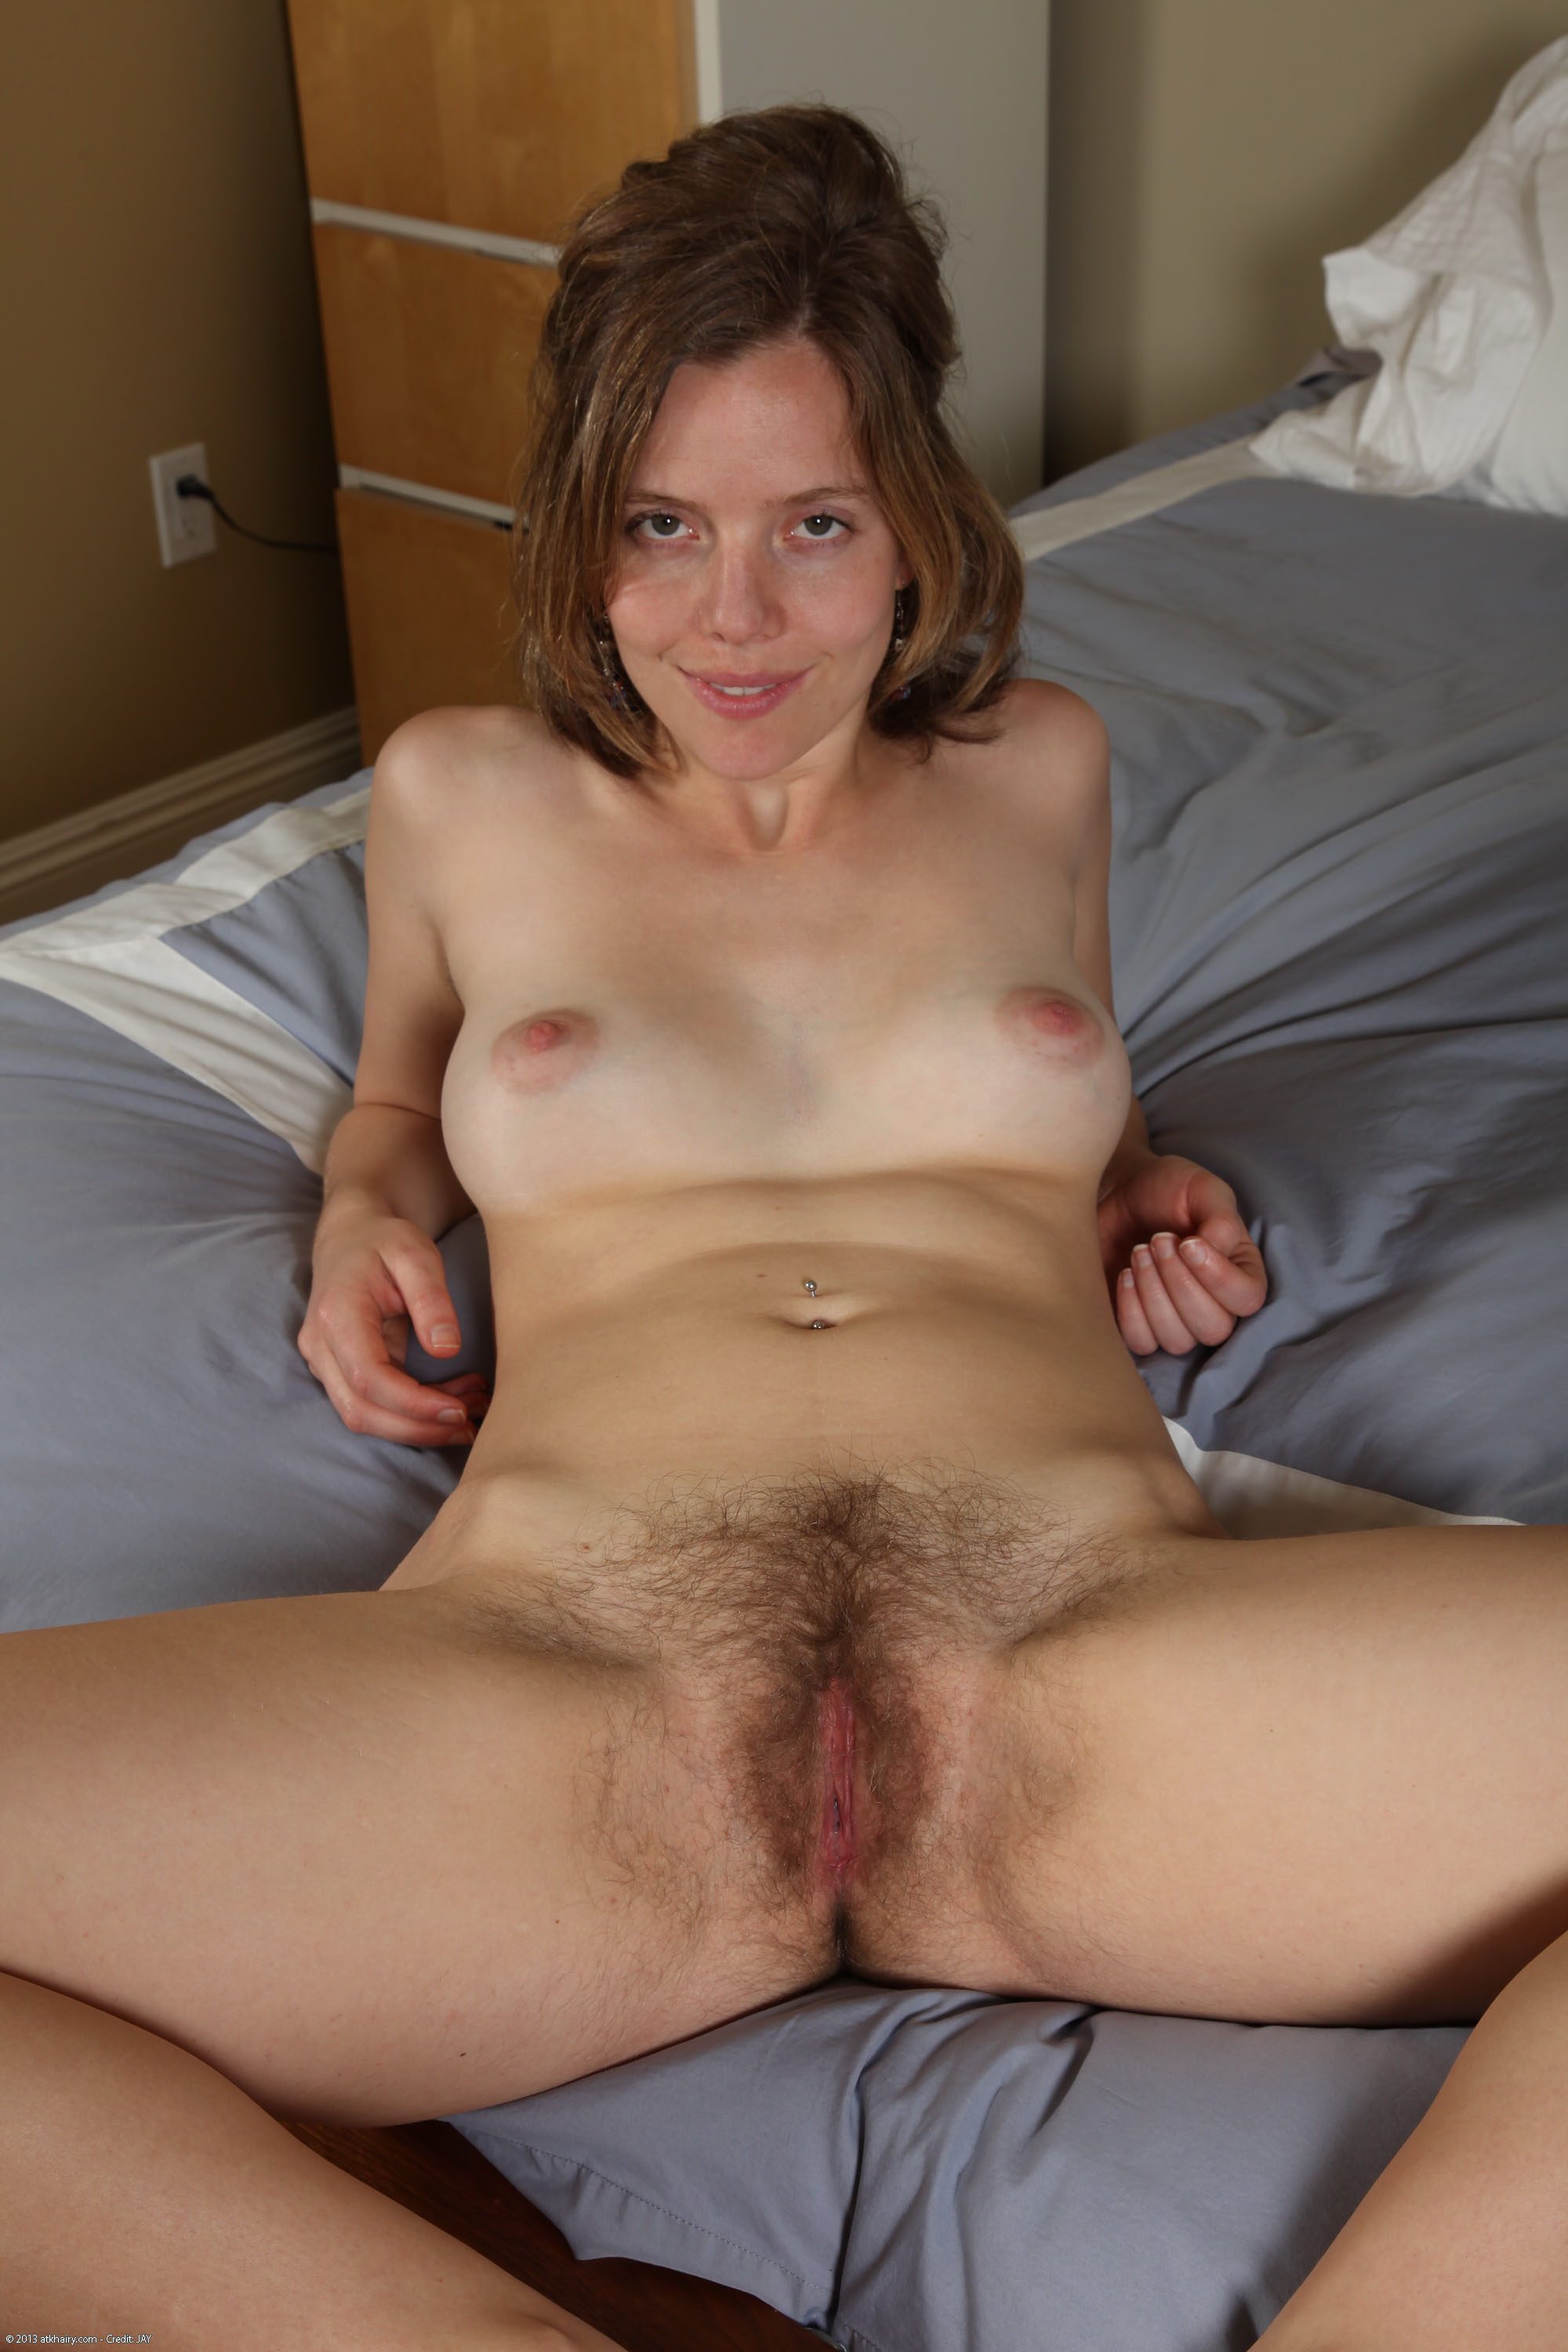 Atk Hairy Com ann atk hairy pussy bobs and vagene | free download nude